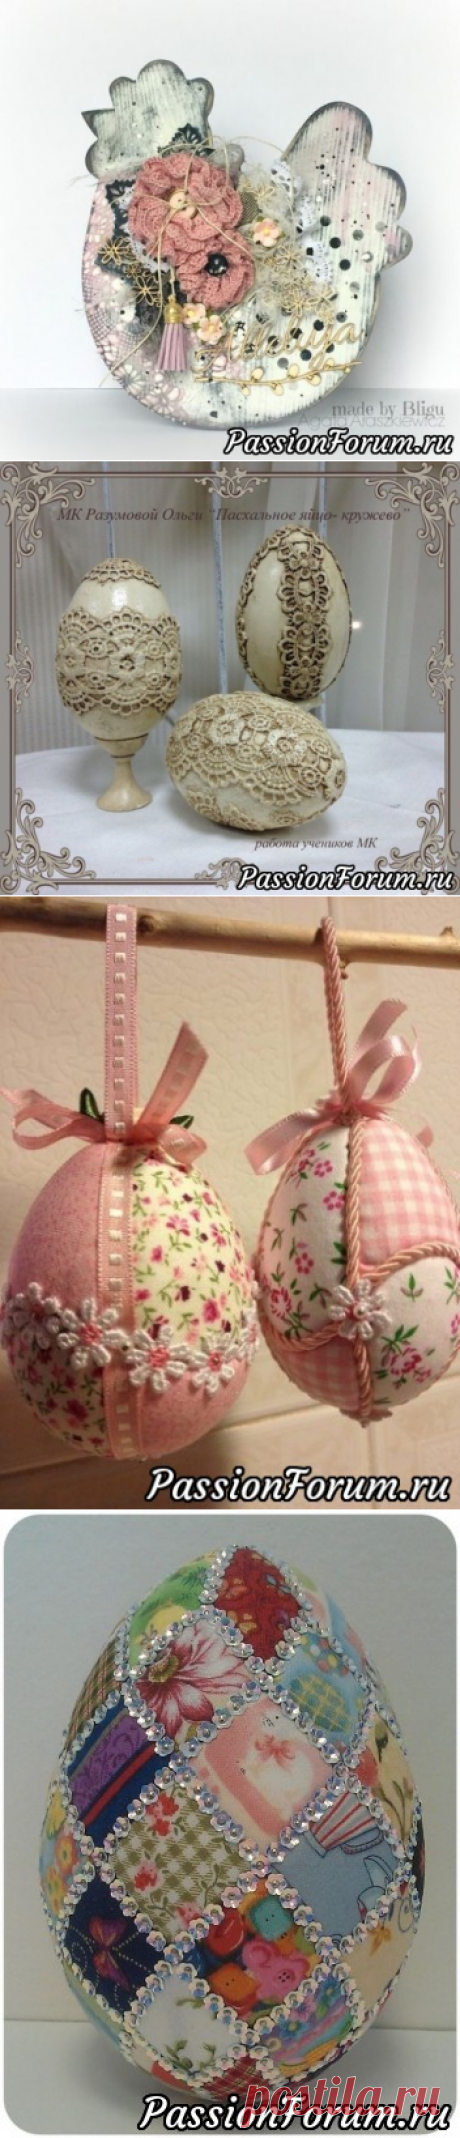 Easter, ideas for inspiration. - record of the user Olga (Olga Nikolaevna) in the community Chat in category Interesting ideas for inspiration